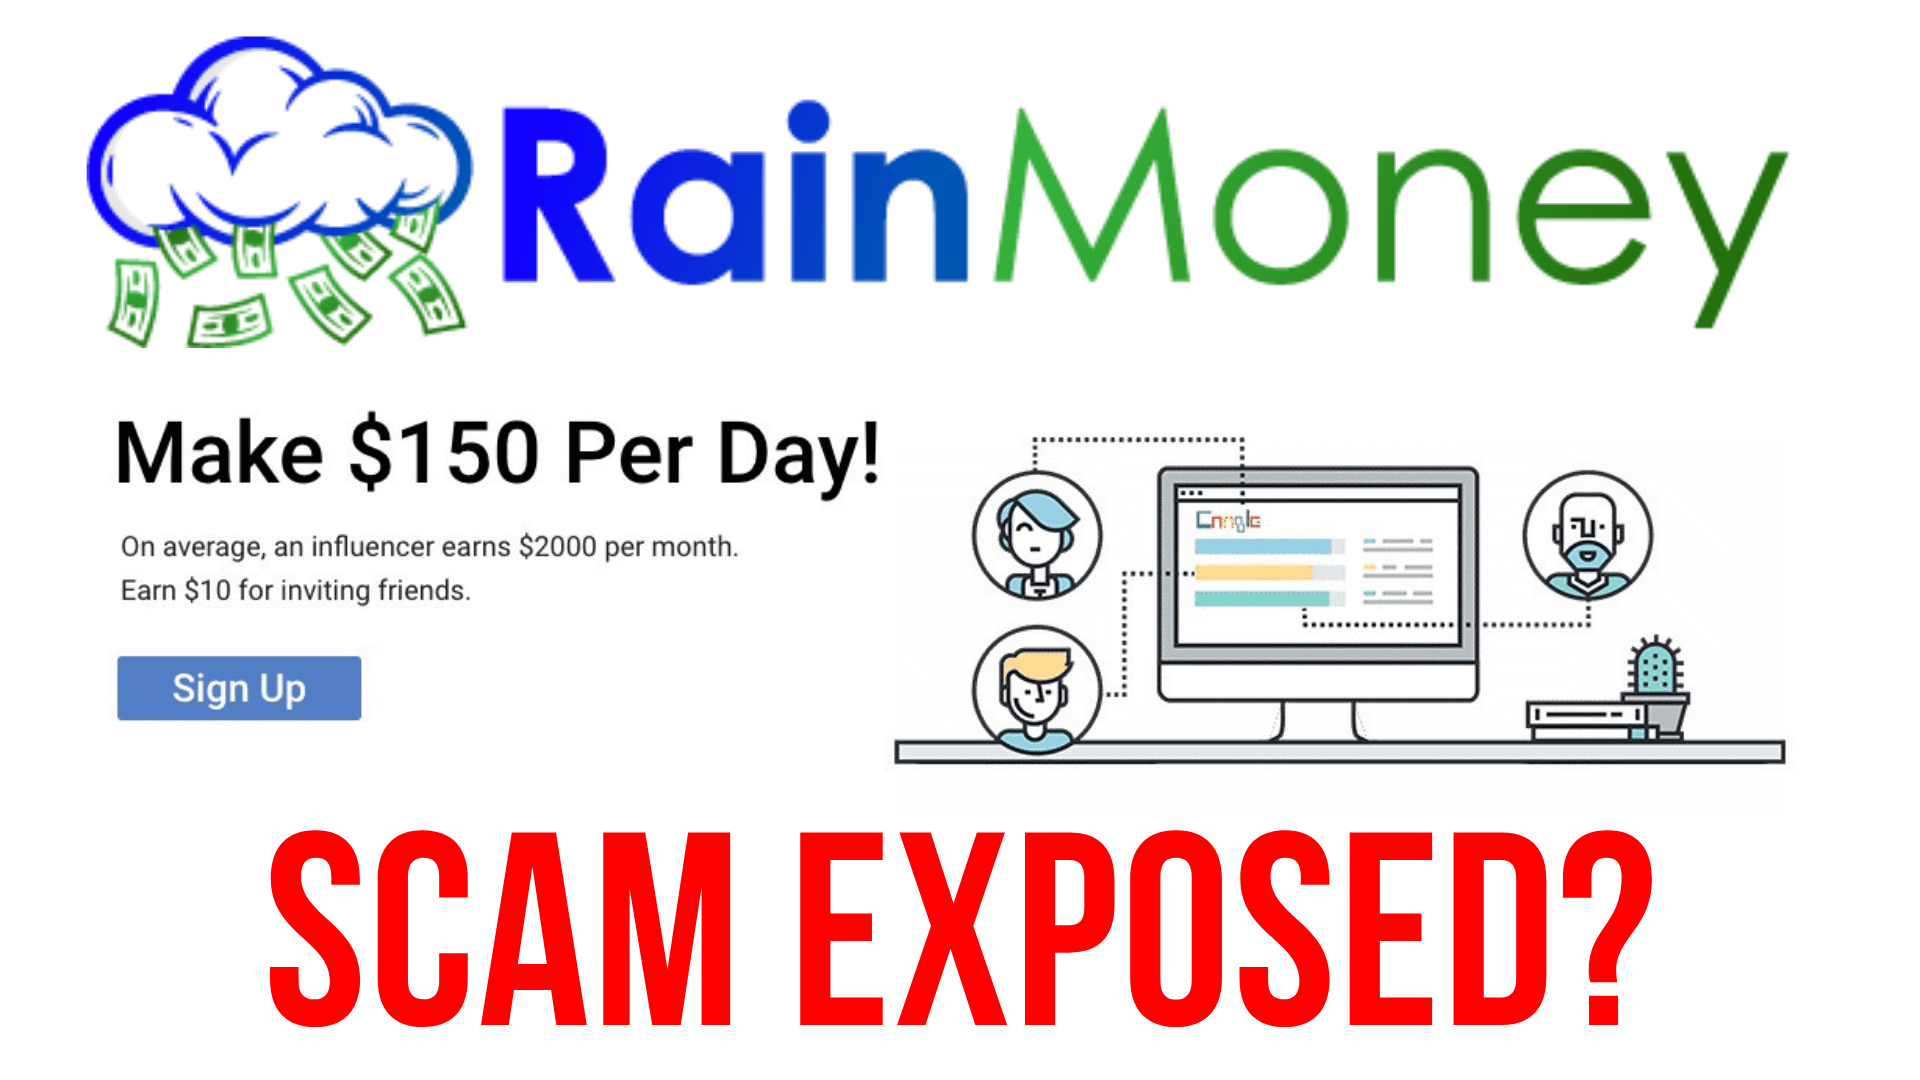 RainMoney [EXPOSED] SCAM? Legit Review of this Shady Website